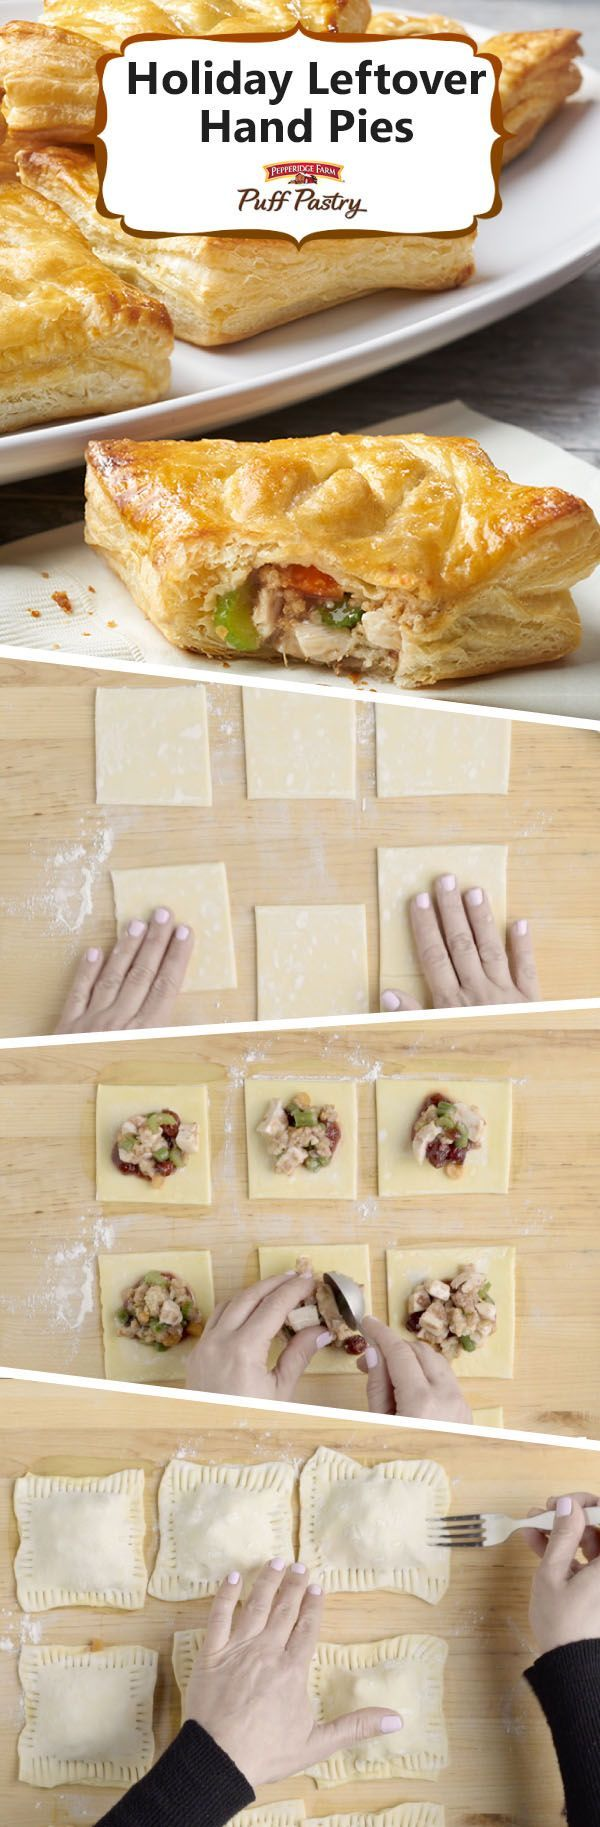 Pepperidge Farm Puff Pastry Holiday Leftover Hand Pies Recipe. Transform your Thanksgiving leftovers into something new and delicious! With these hand pies, all of the goodness from holiday leftovers is wrapped up in flaky Puff Pastry and baked to perfection. Cranberry sauce combined with gravy adds a savory sweetness to your turkey, stuffing and veggies. It's like having a holiday dinner in every bite.